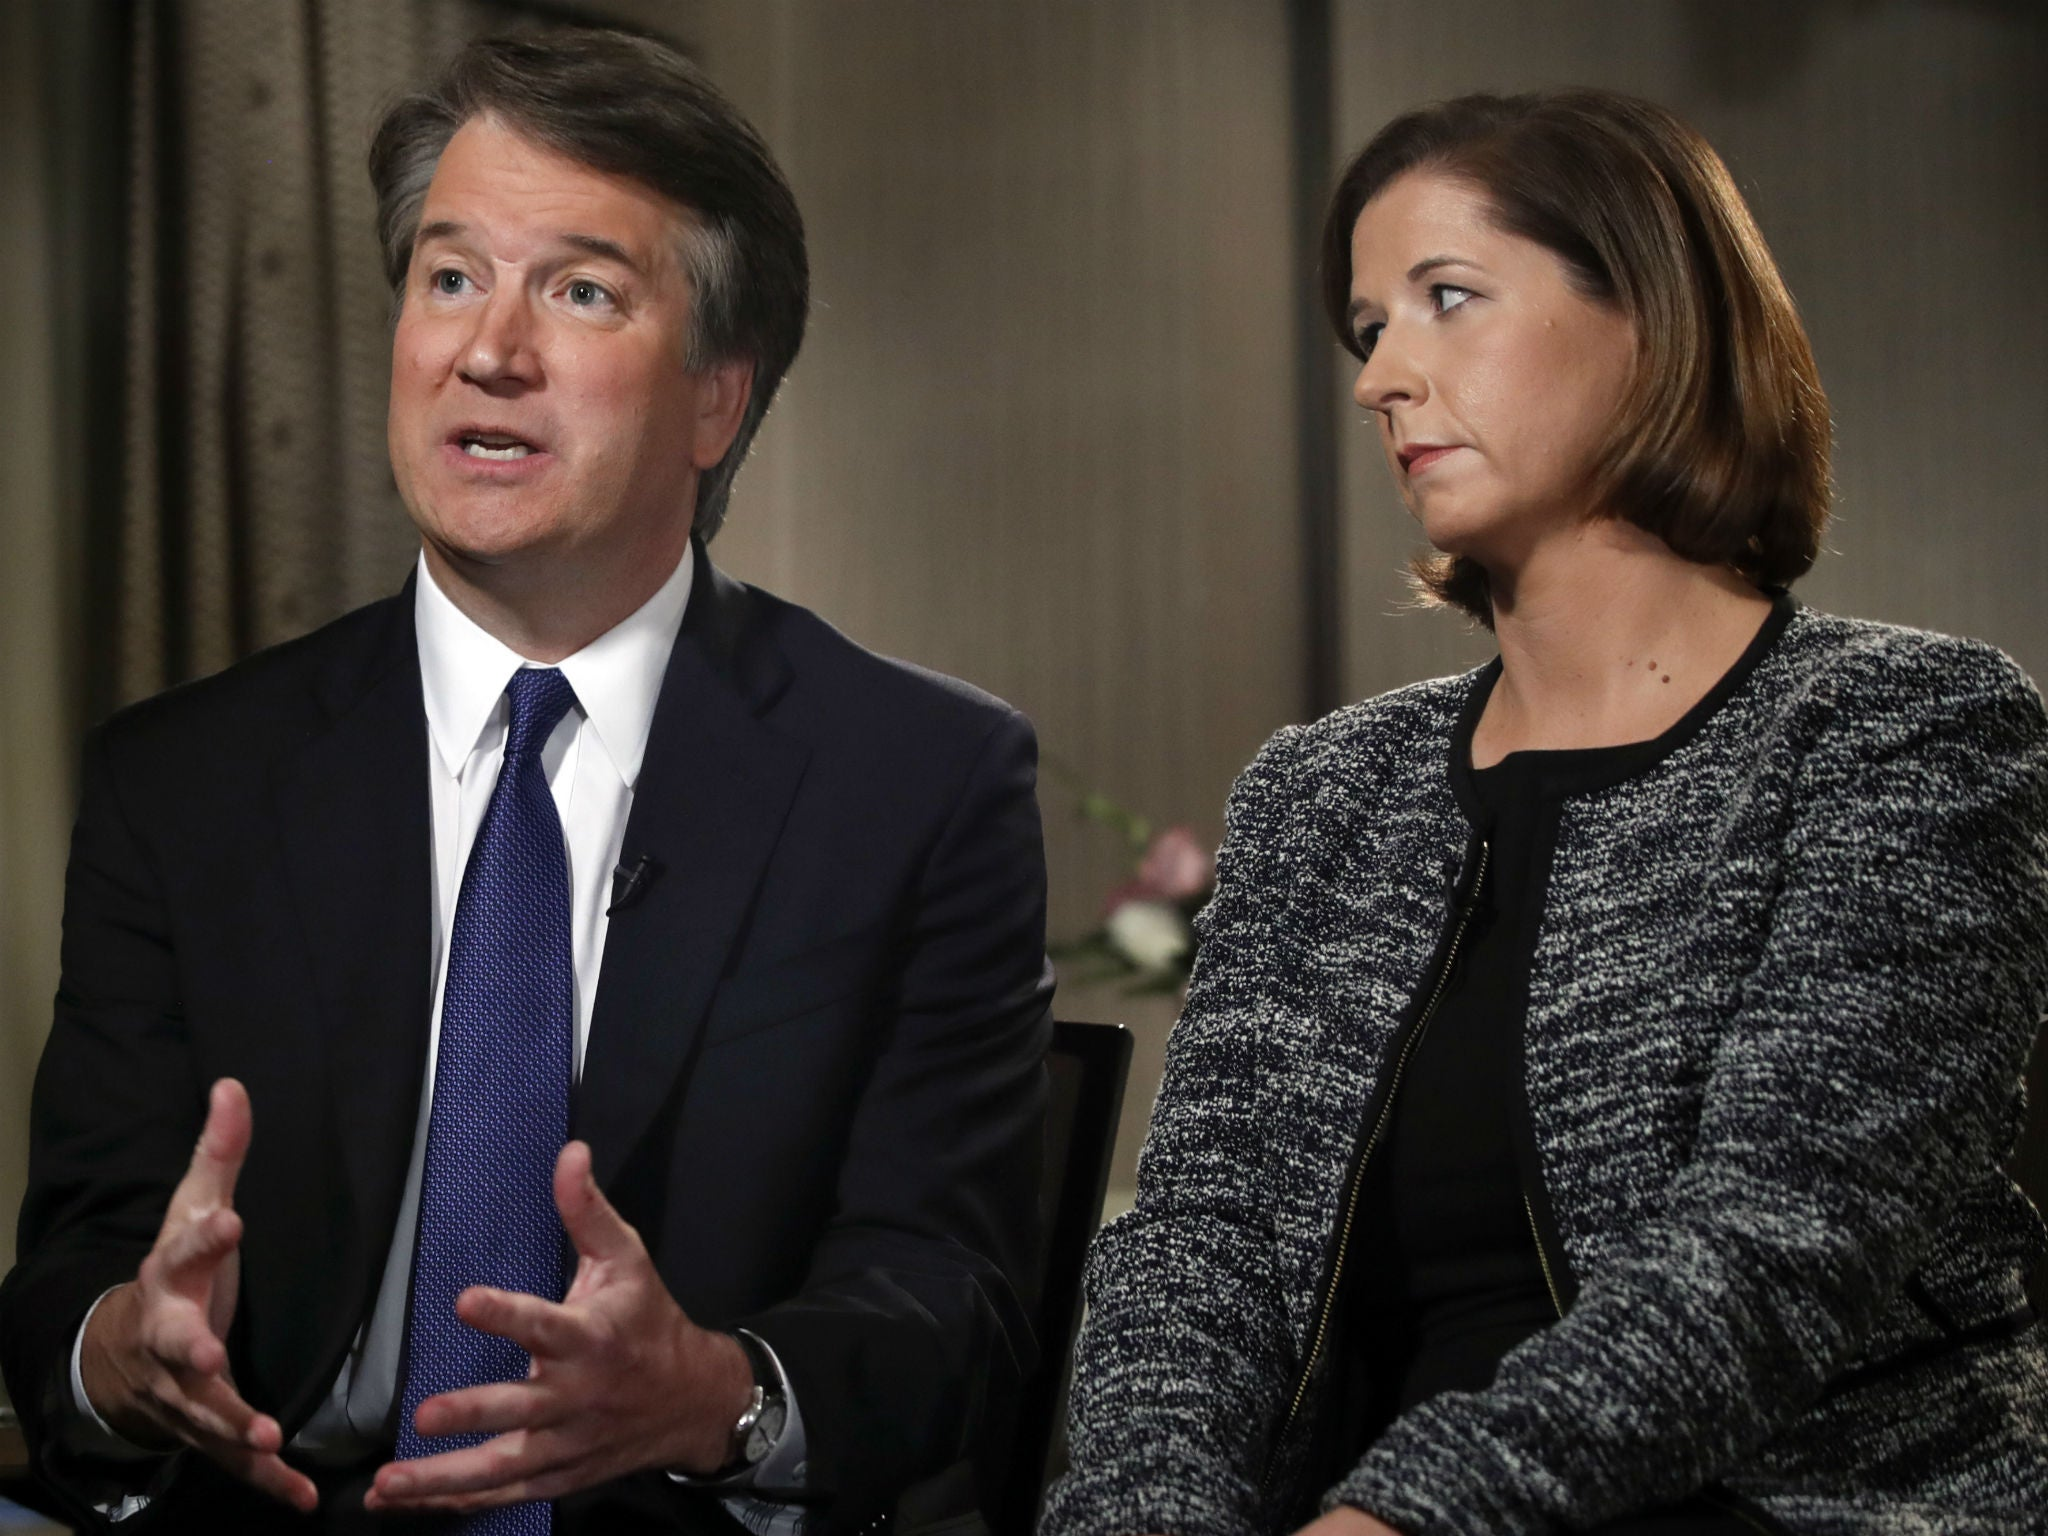 Brett Kavanaugh sitting beside wife Ashley tells Fox News: 'I'm not going anywhere' over sexual misconduct allegations